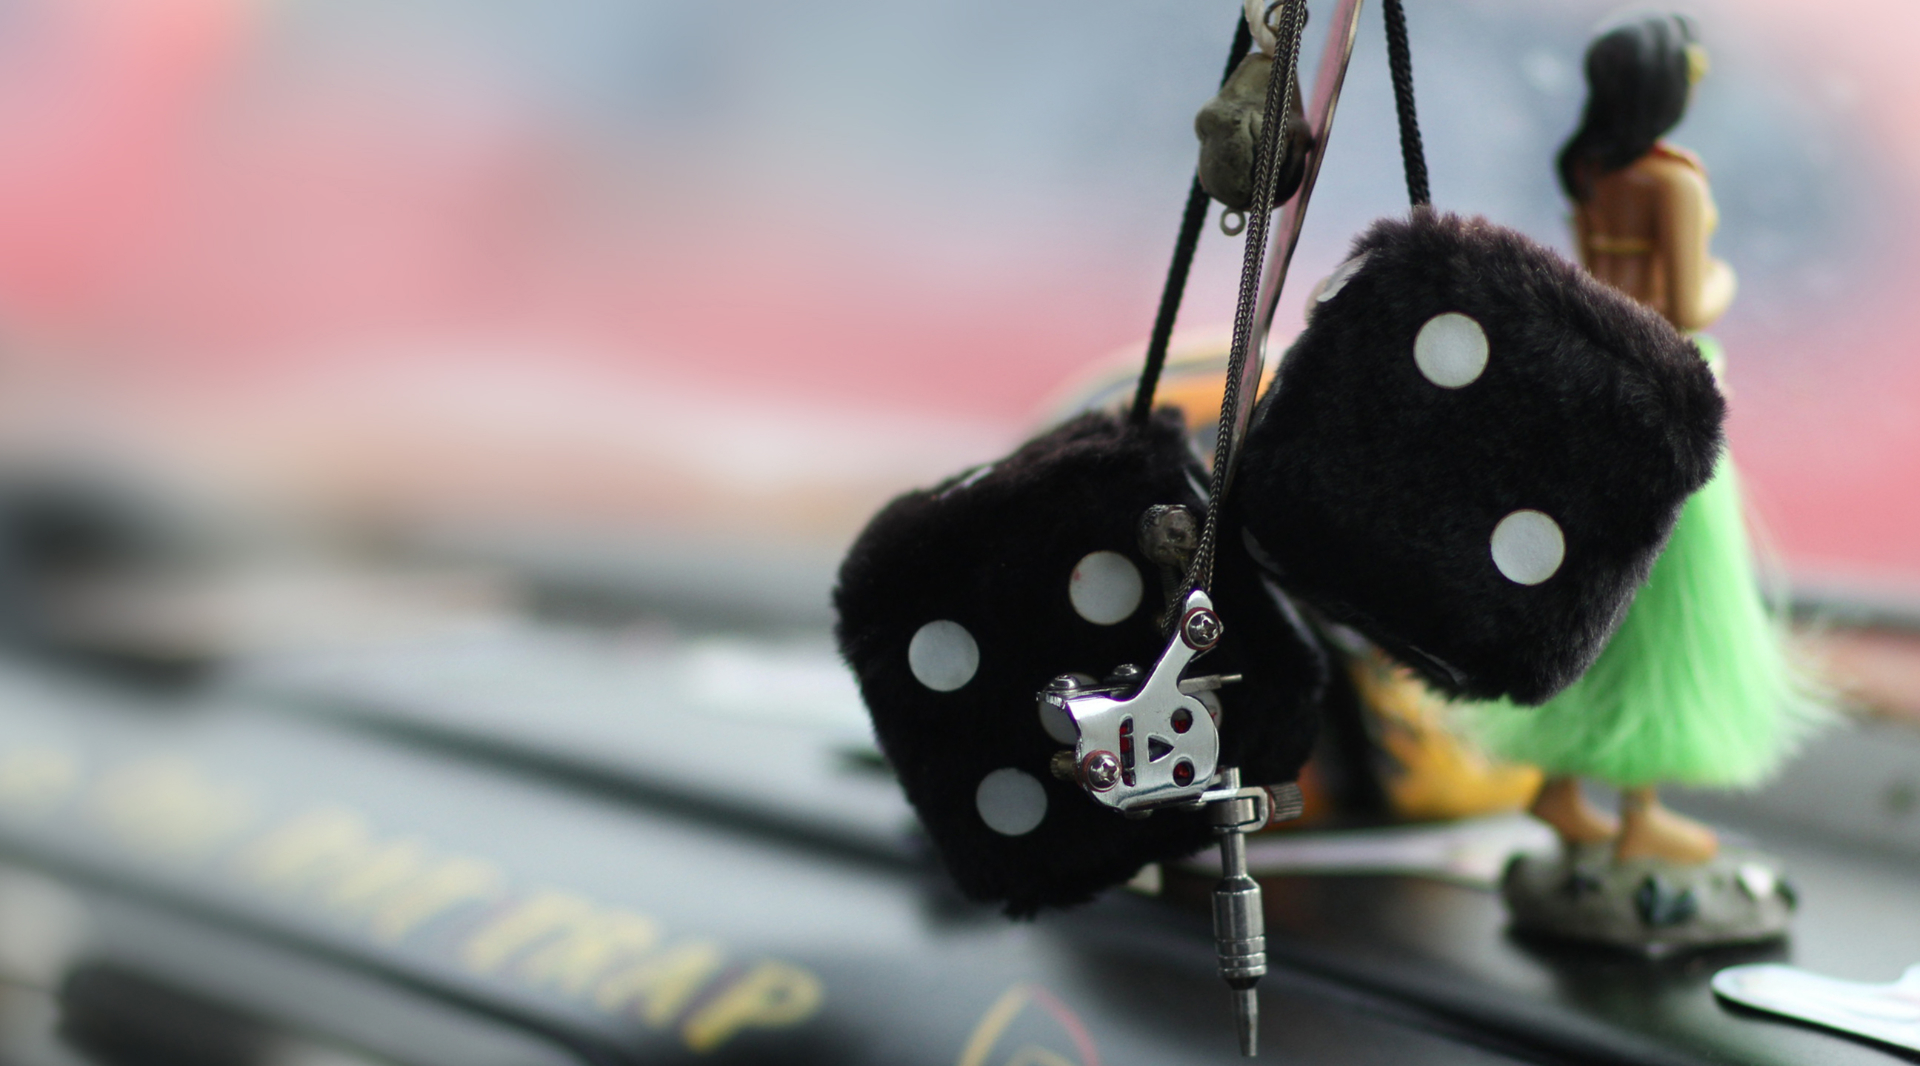 Dice hanging from the mirror as traffic violation